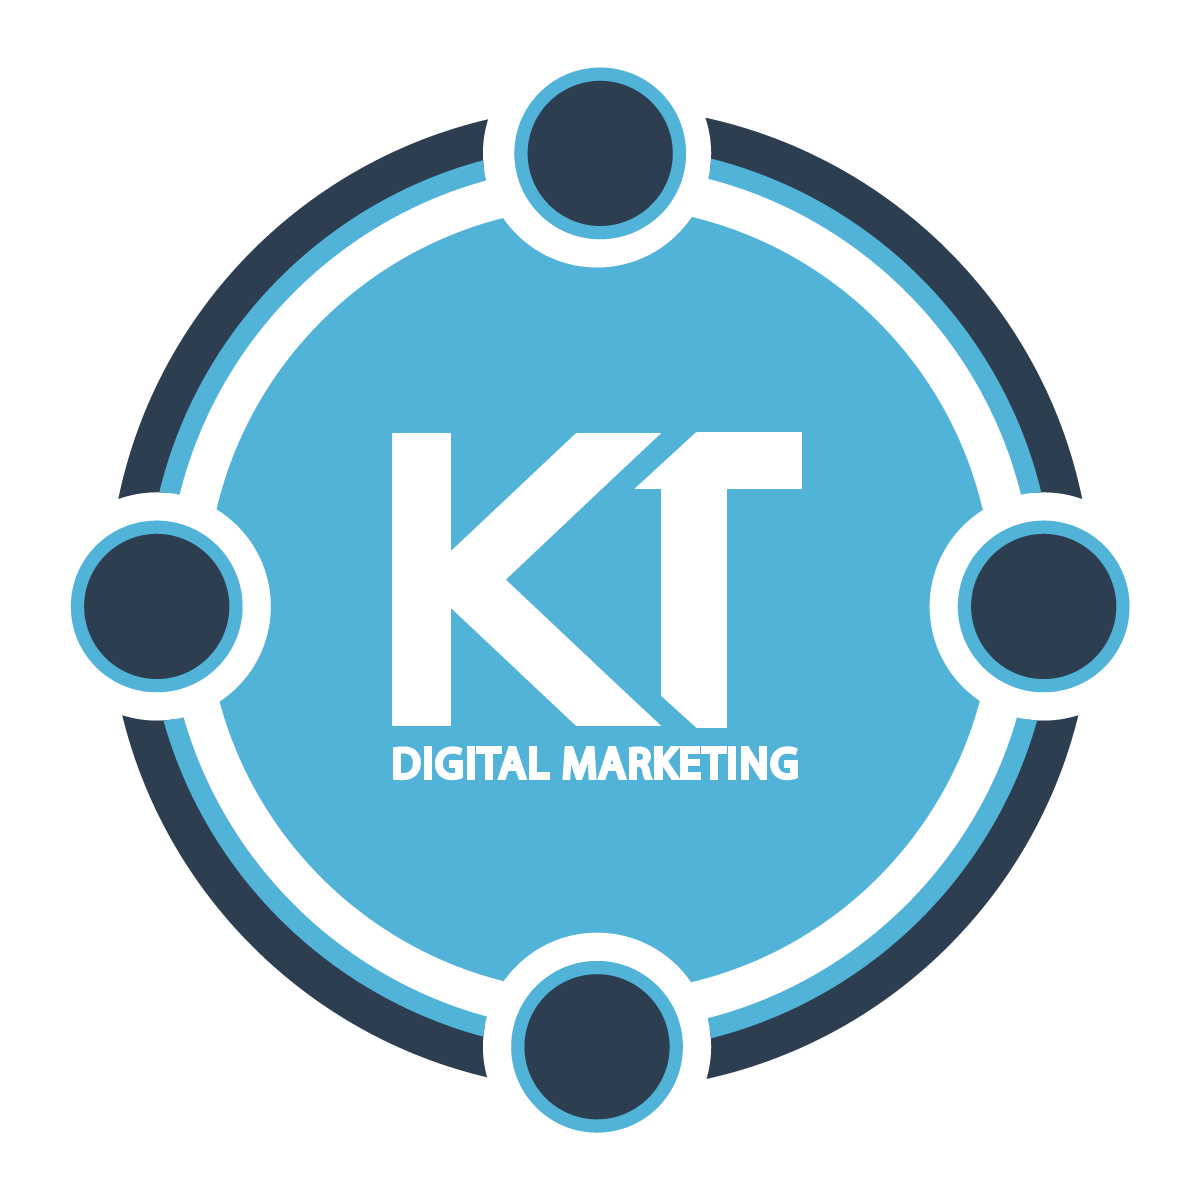 KT Digital Marketing